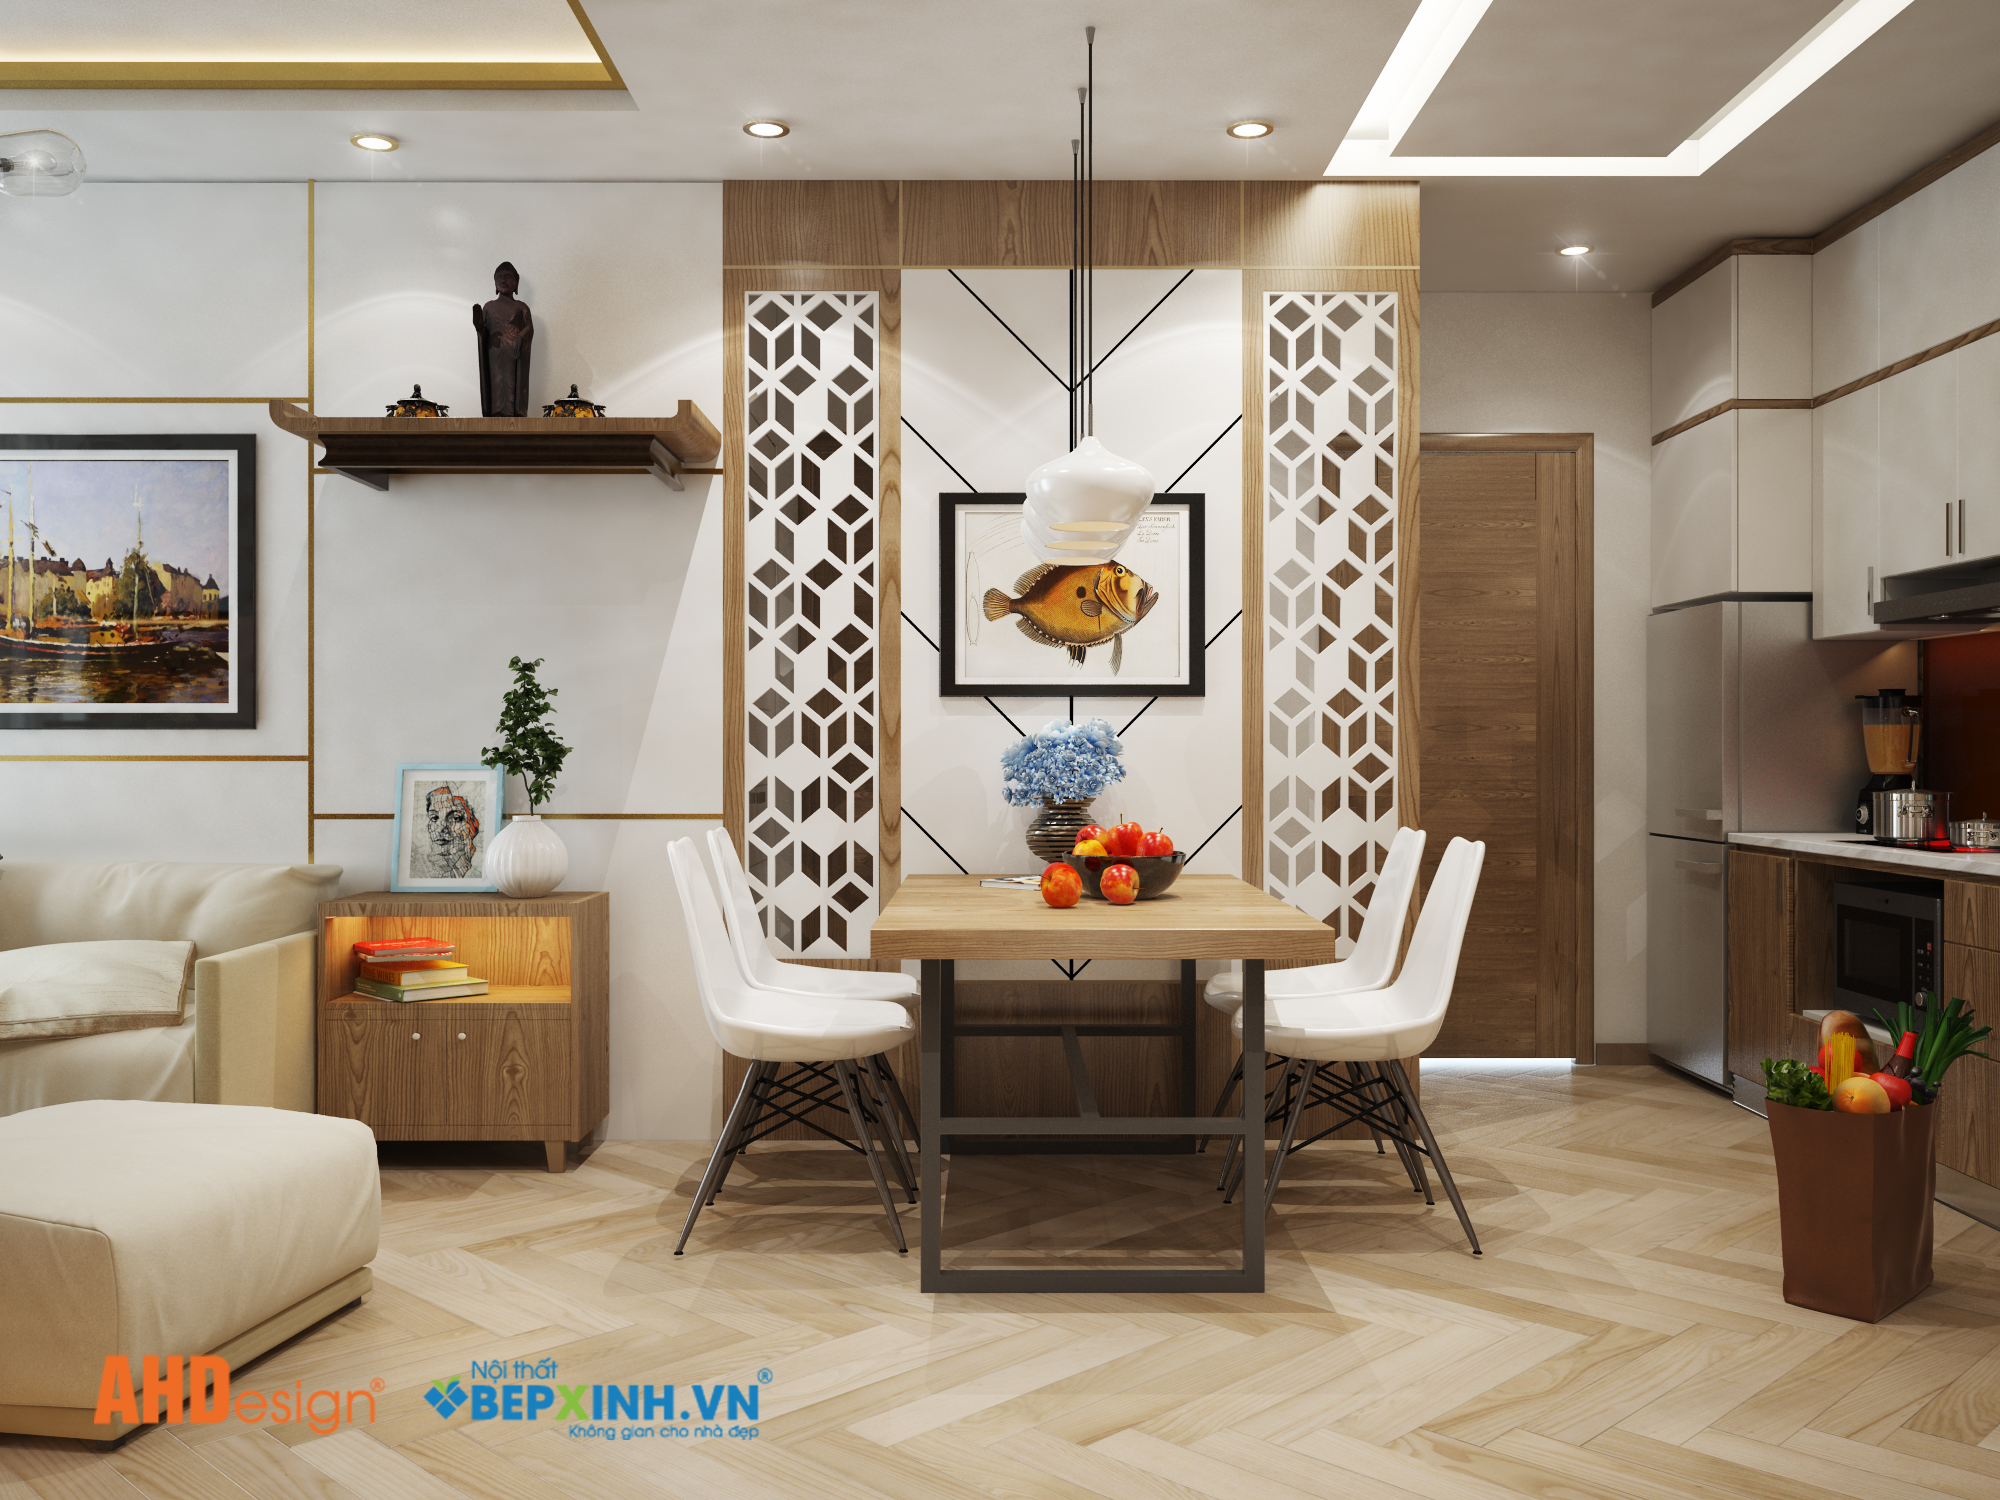 noi-that-can-ho-ecolife-75m2-khach-bep-3